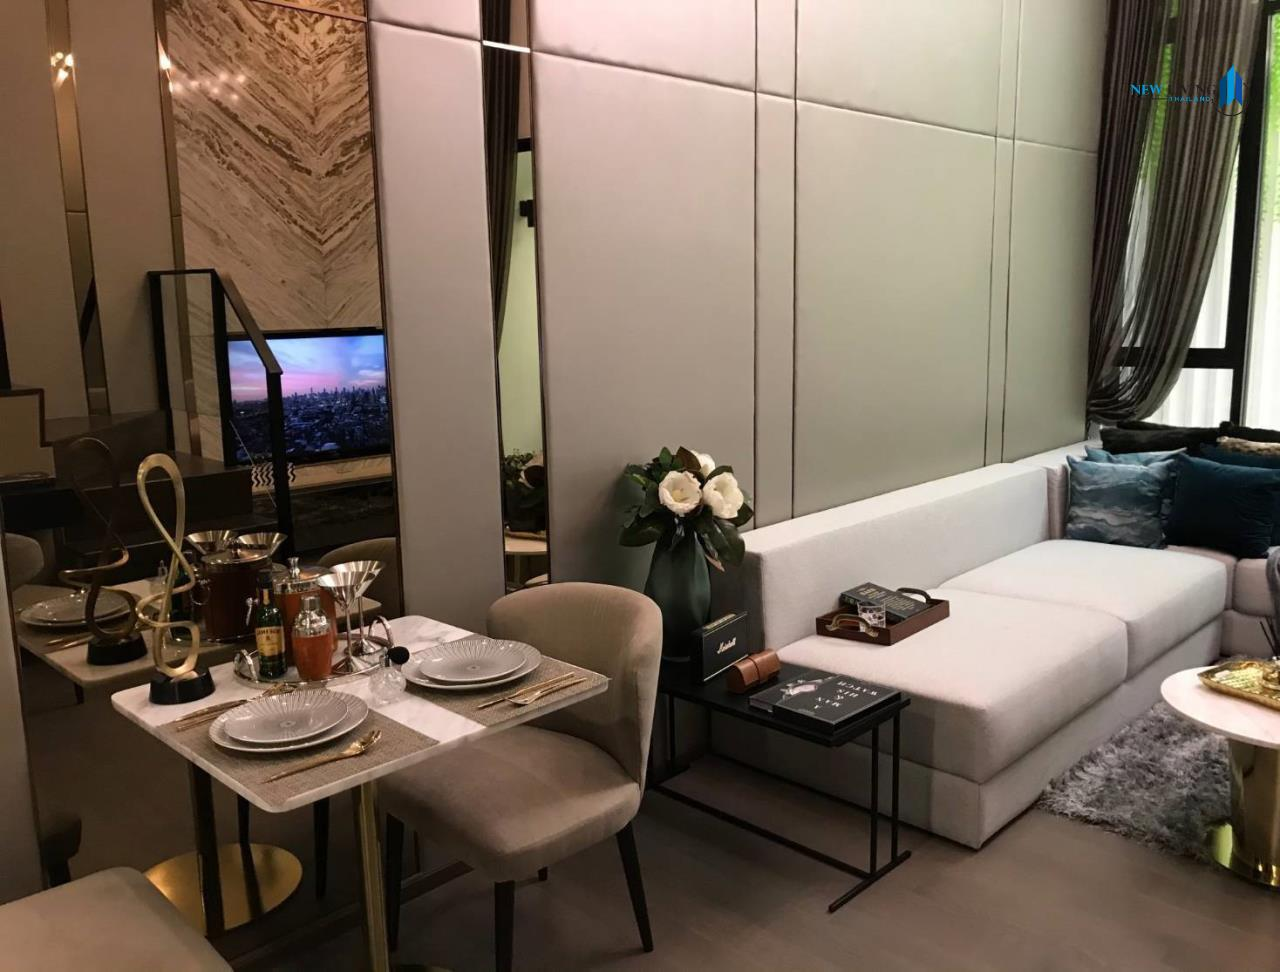 New Living Thailand Agency's Sell Down Payment, Park Origin Ratchathewi ** 1 Deplex 34 sq.m. high floor near BTS Ratchathewi 4